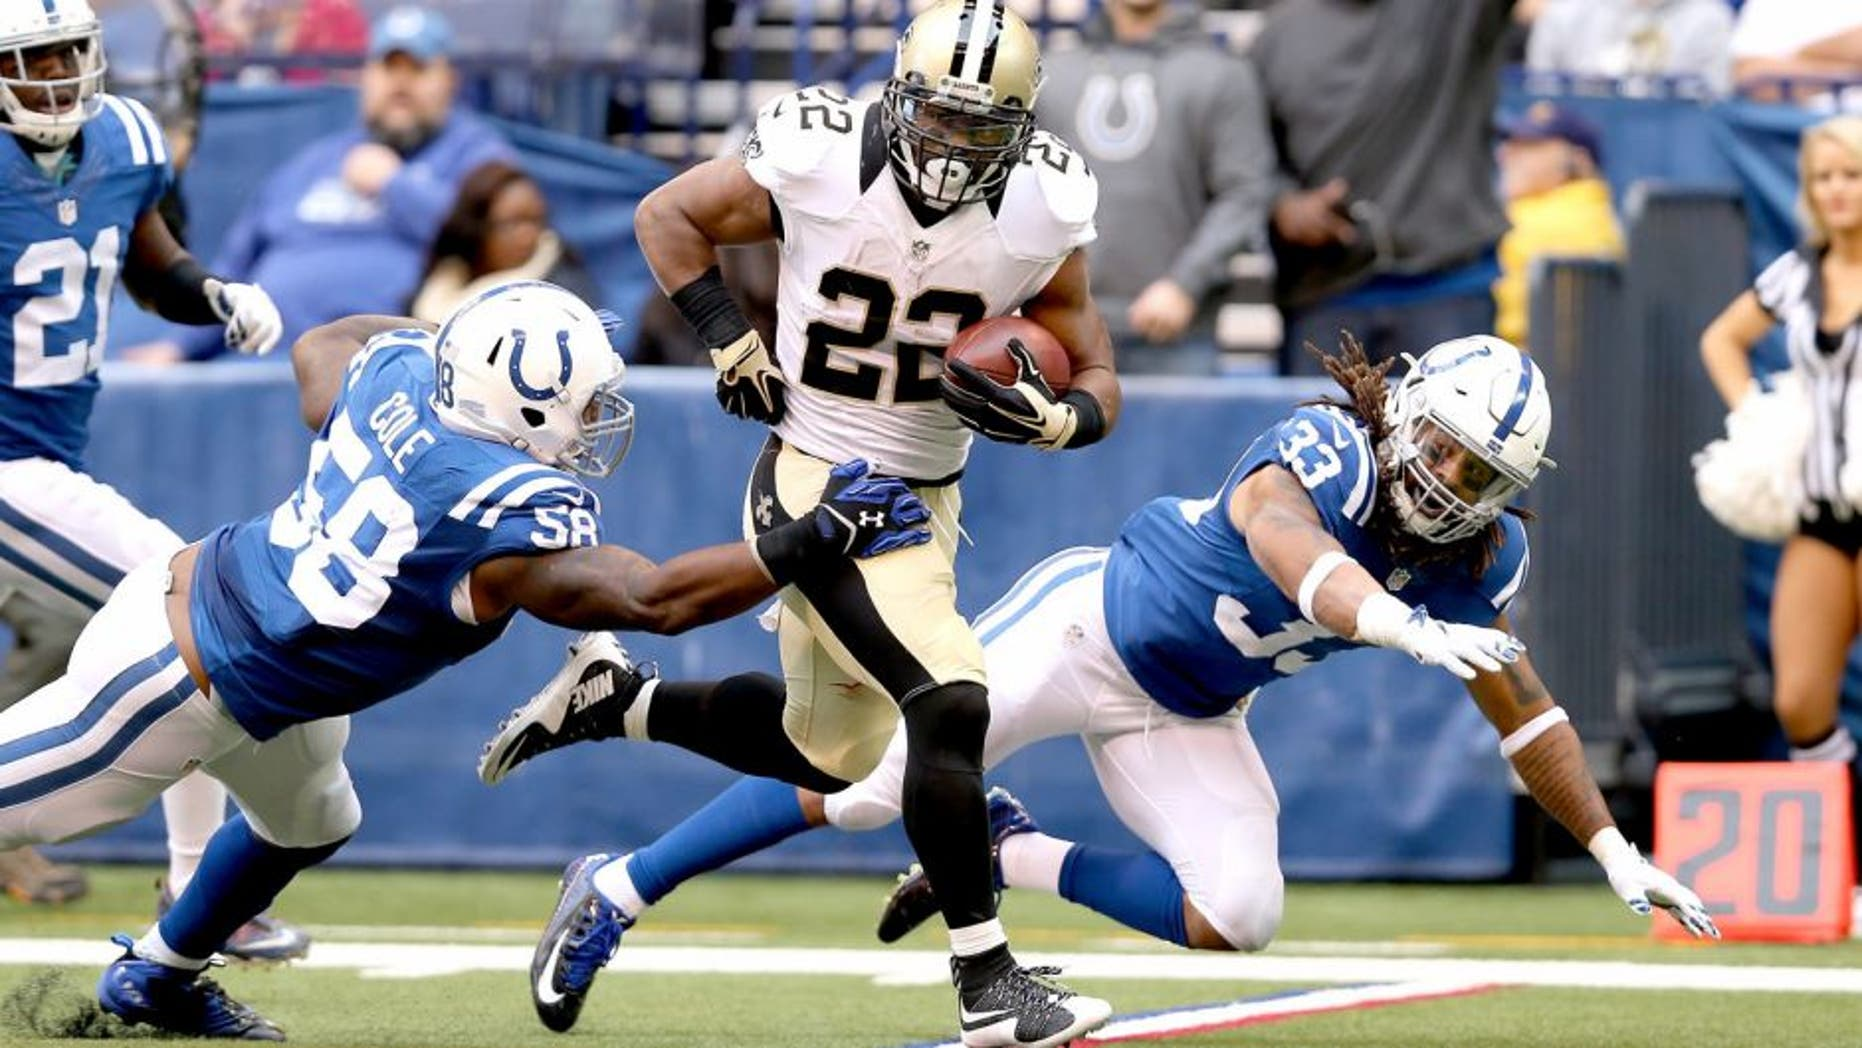 INDIANAPOLIS, IN - OCTOBER 25: Mark Ingram #22 of the New Orleans Saints runs with the ball against the Indianapolis Colts at Lucas Oil Stadium on October 25, 2015 in Indianapolis, Indiana. (Photo by Andy Lyons/Getty Images)